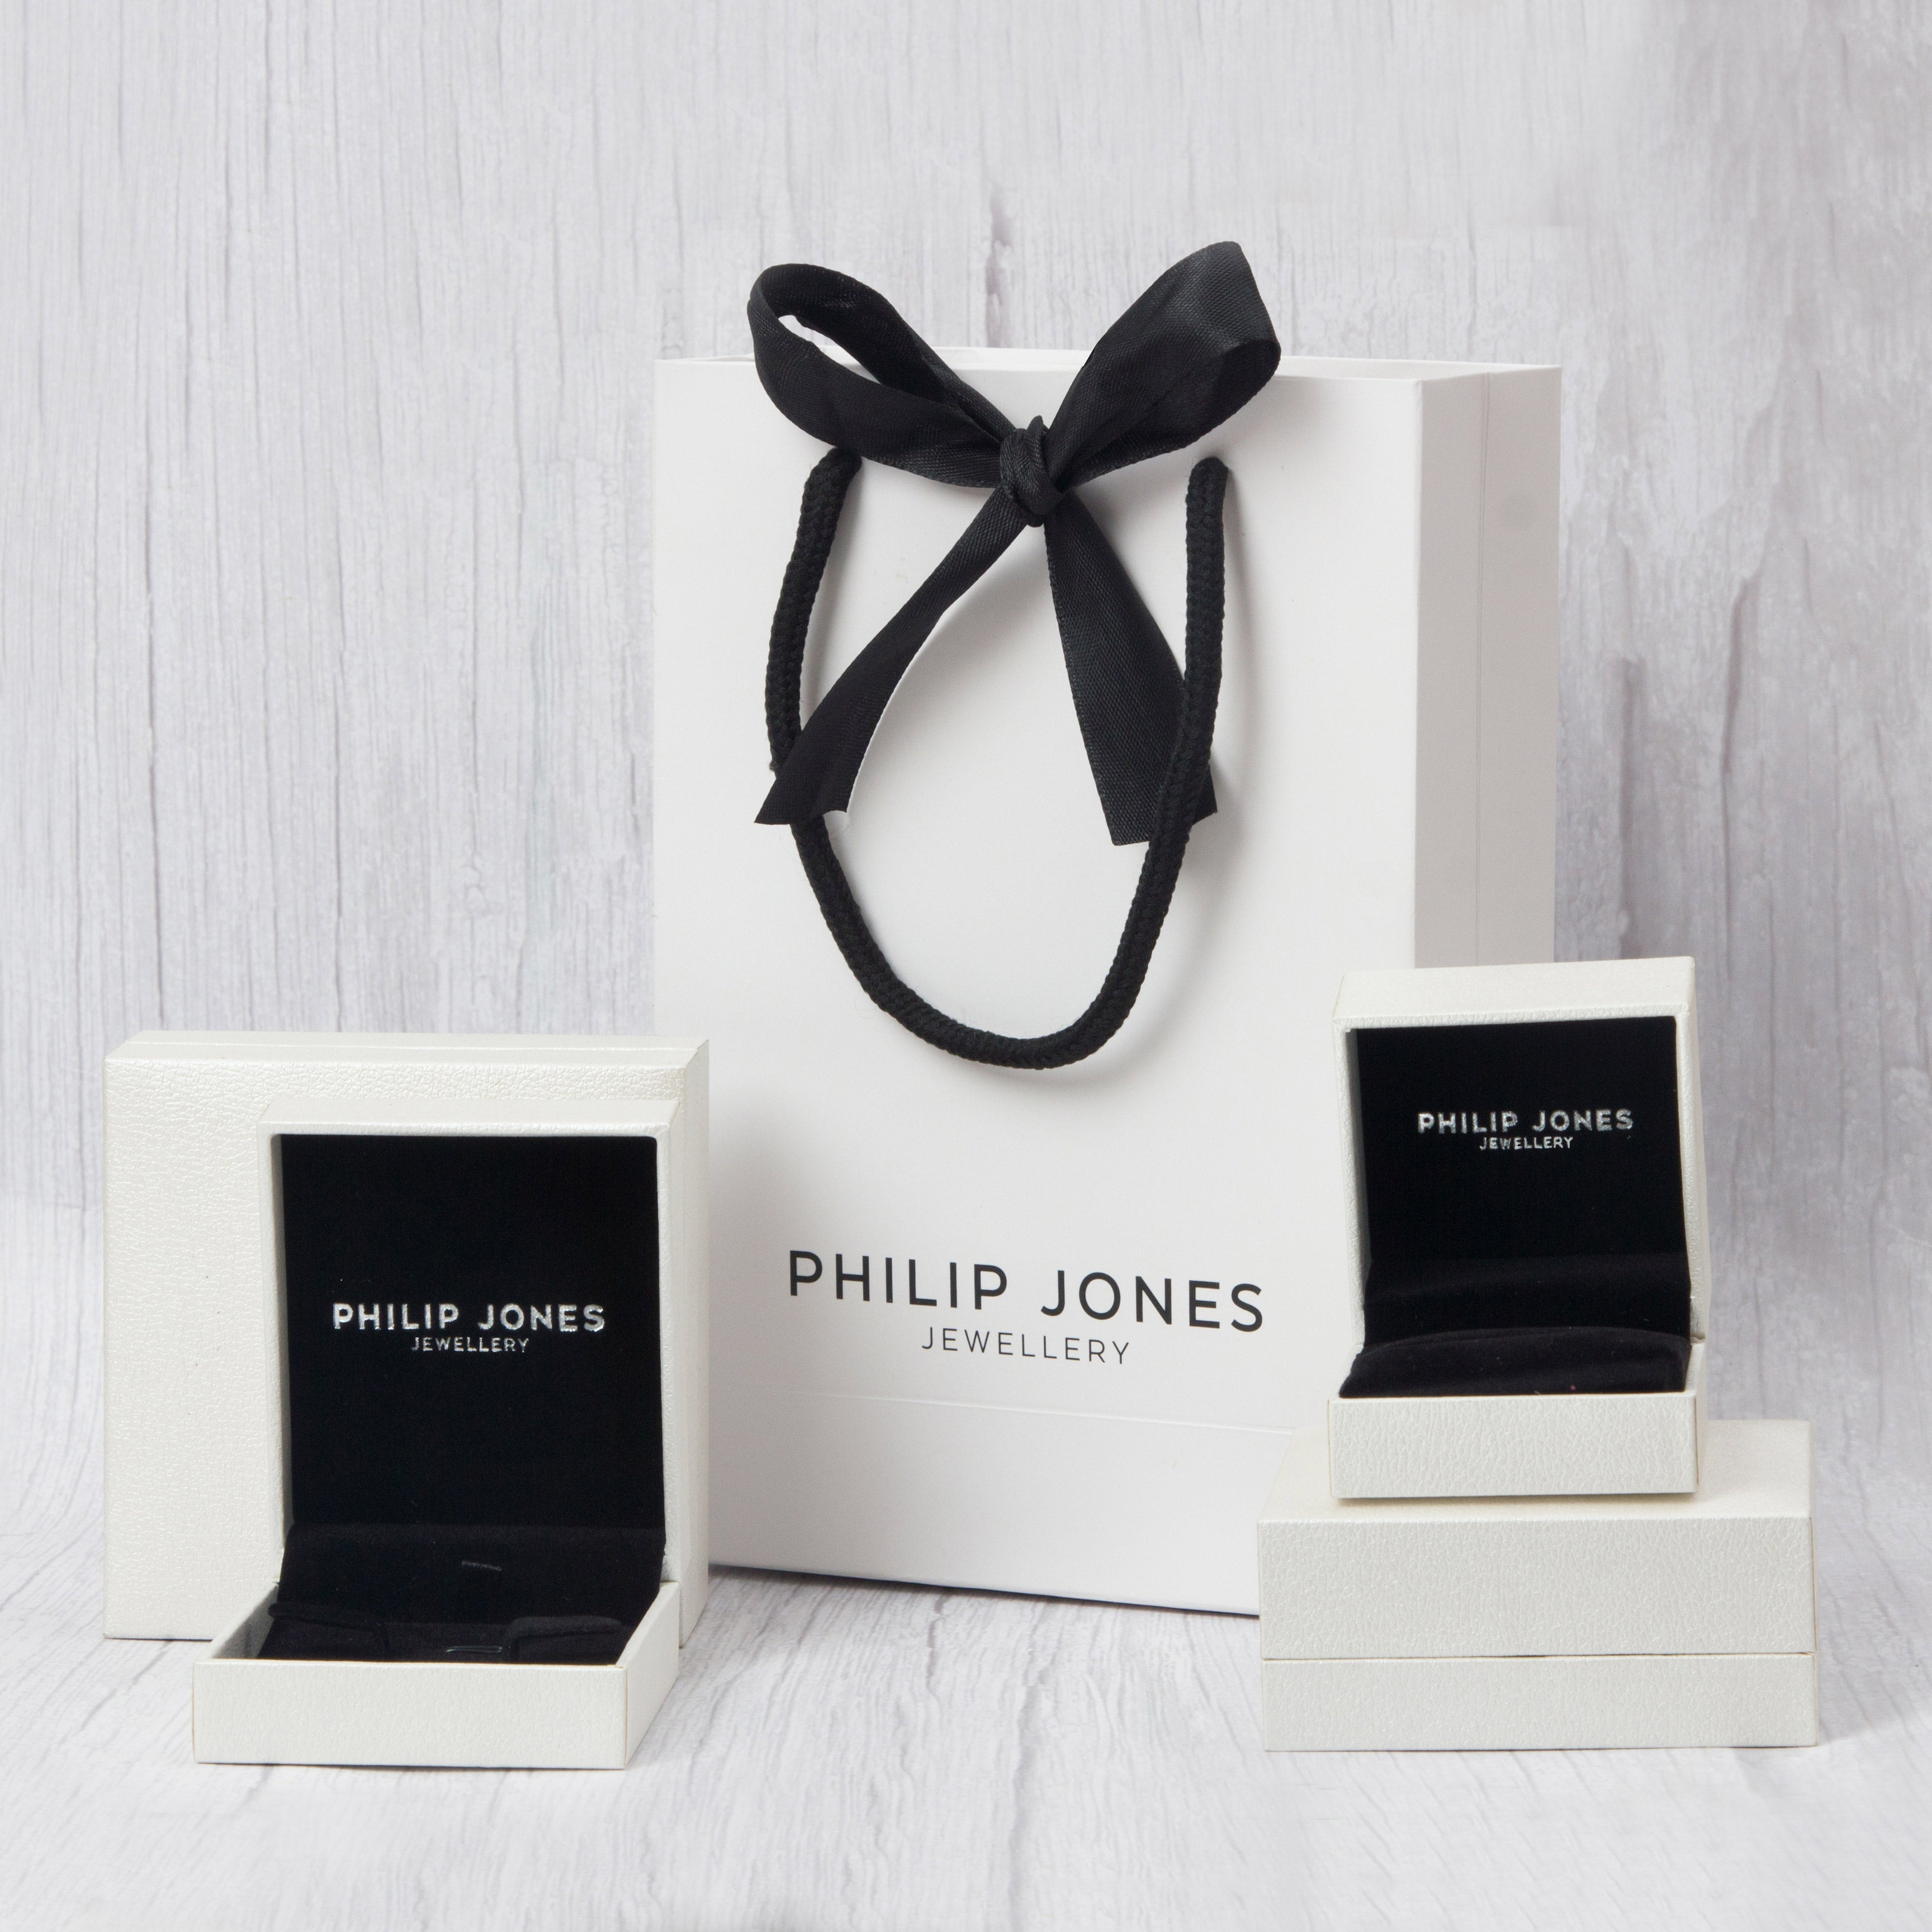 Philip Jones Gift Box